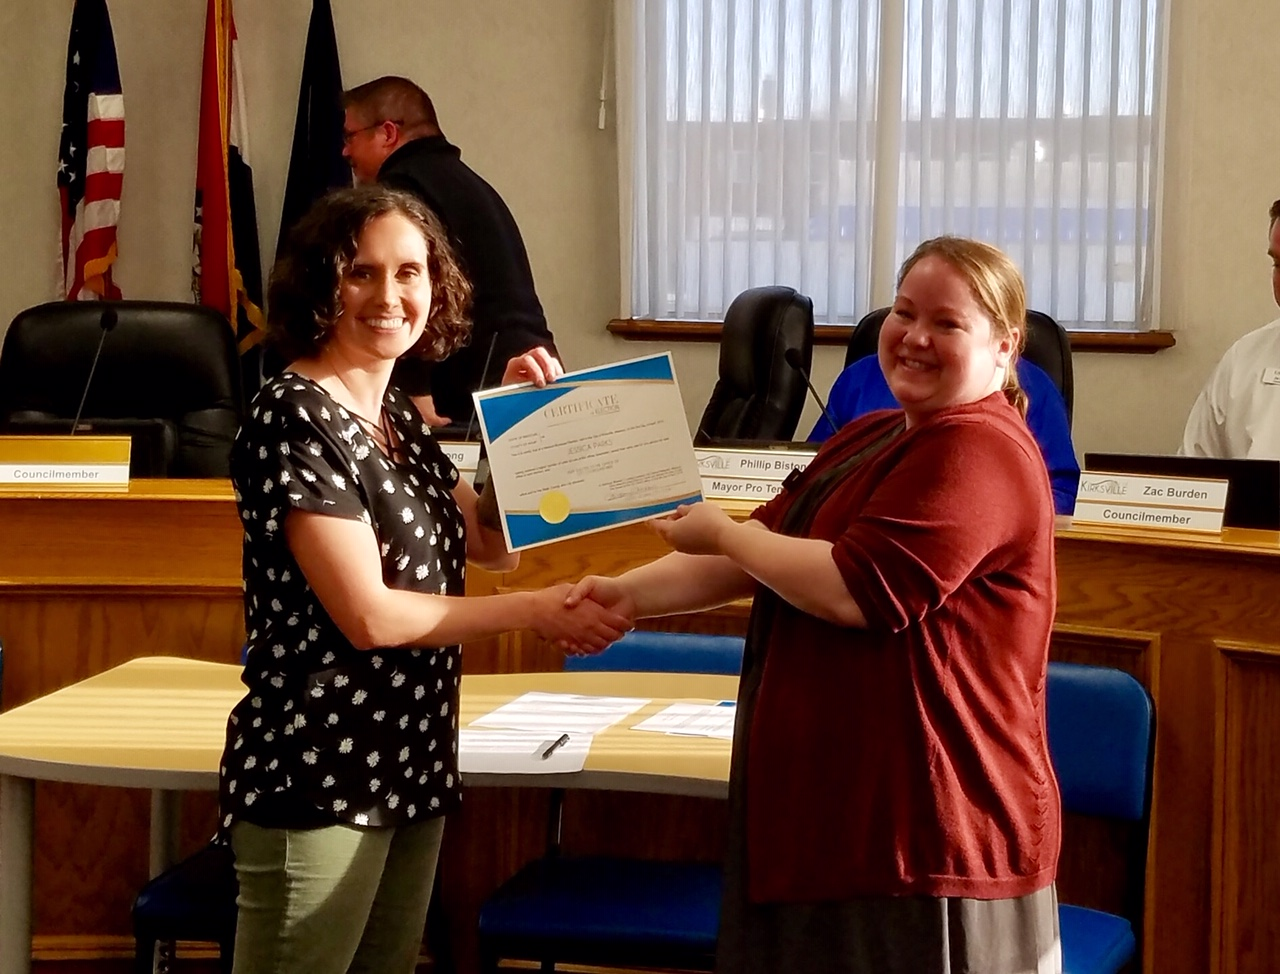 Jessica was sworn in to City Council in 2019.